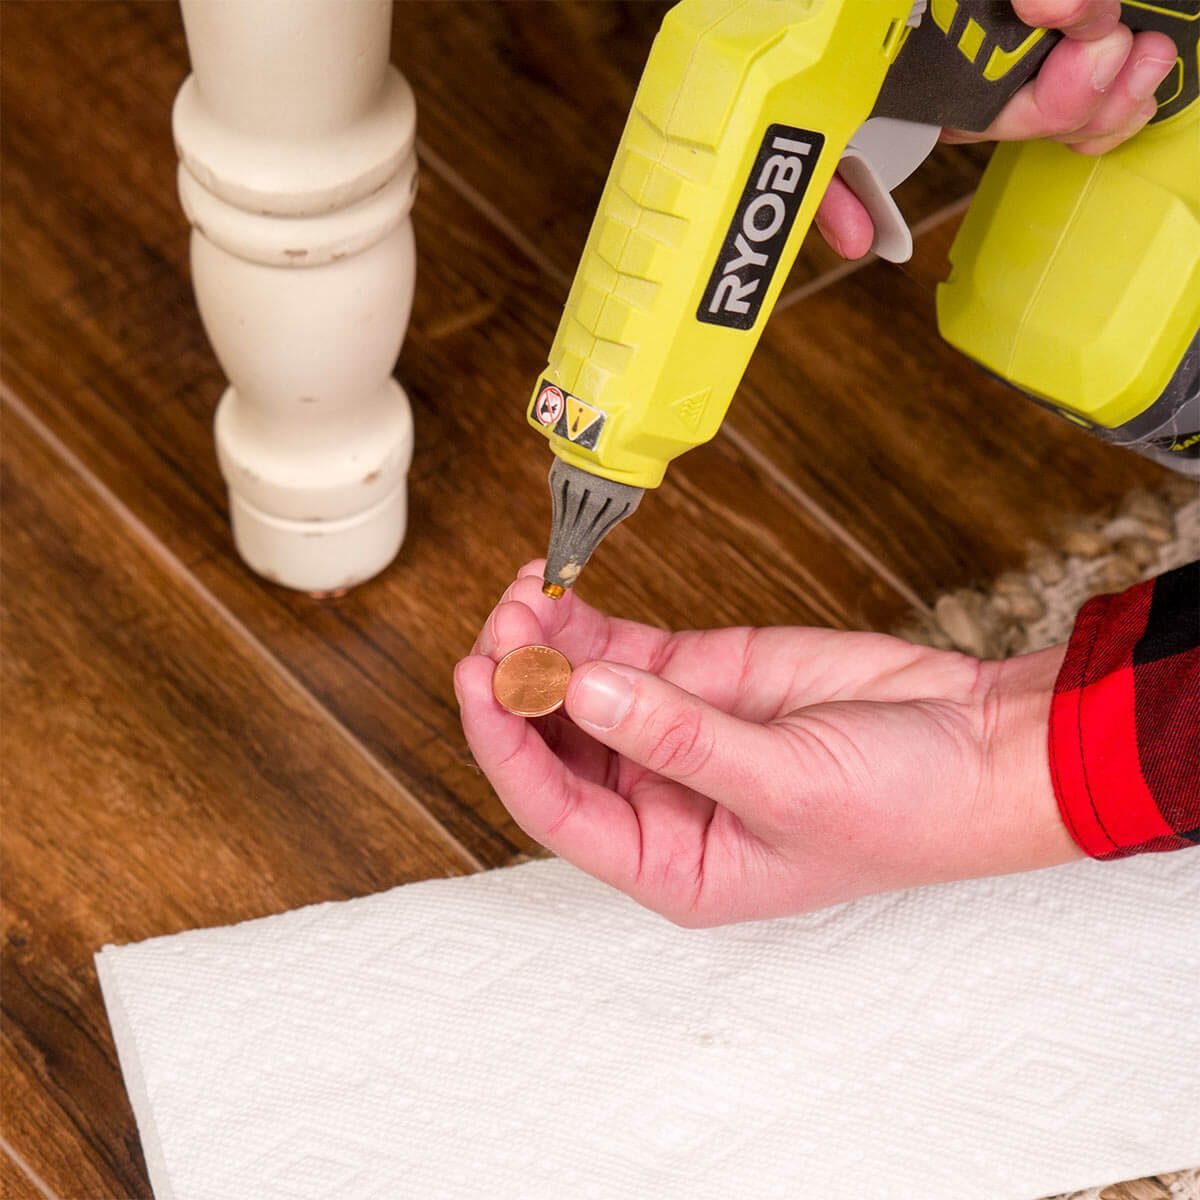 Hot Glue Gun Uses: Fix Wobbly Furniture with a Penny